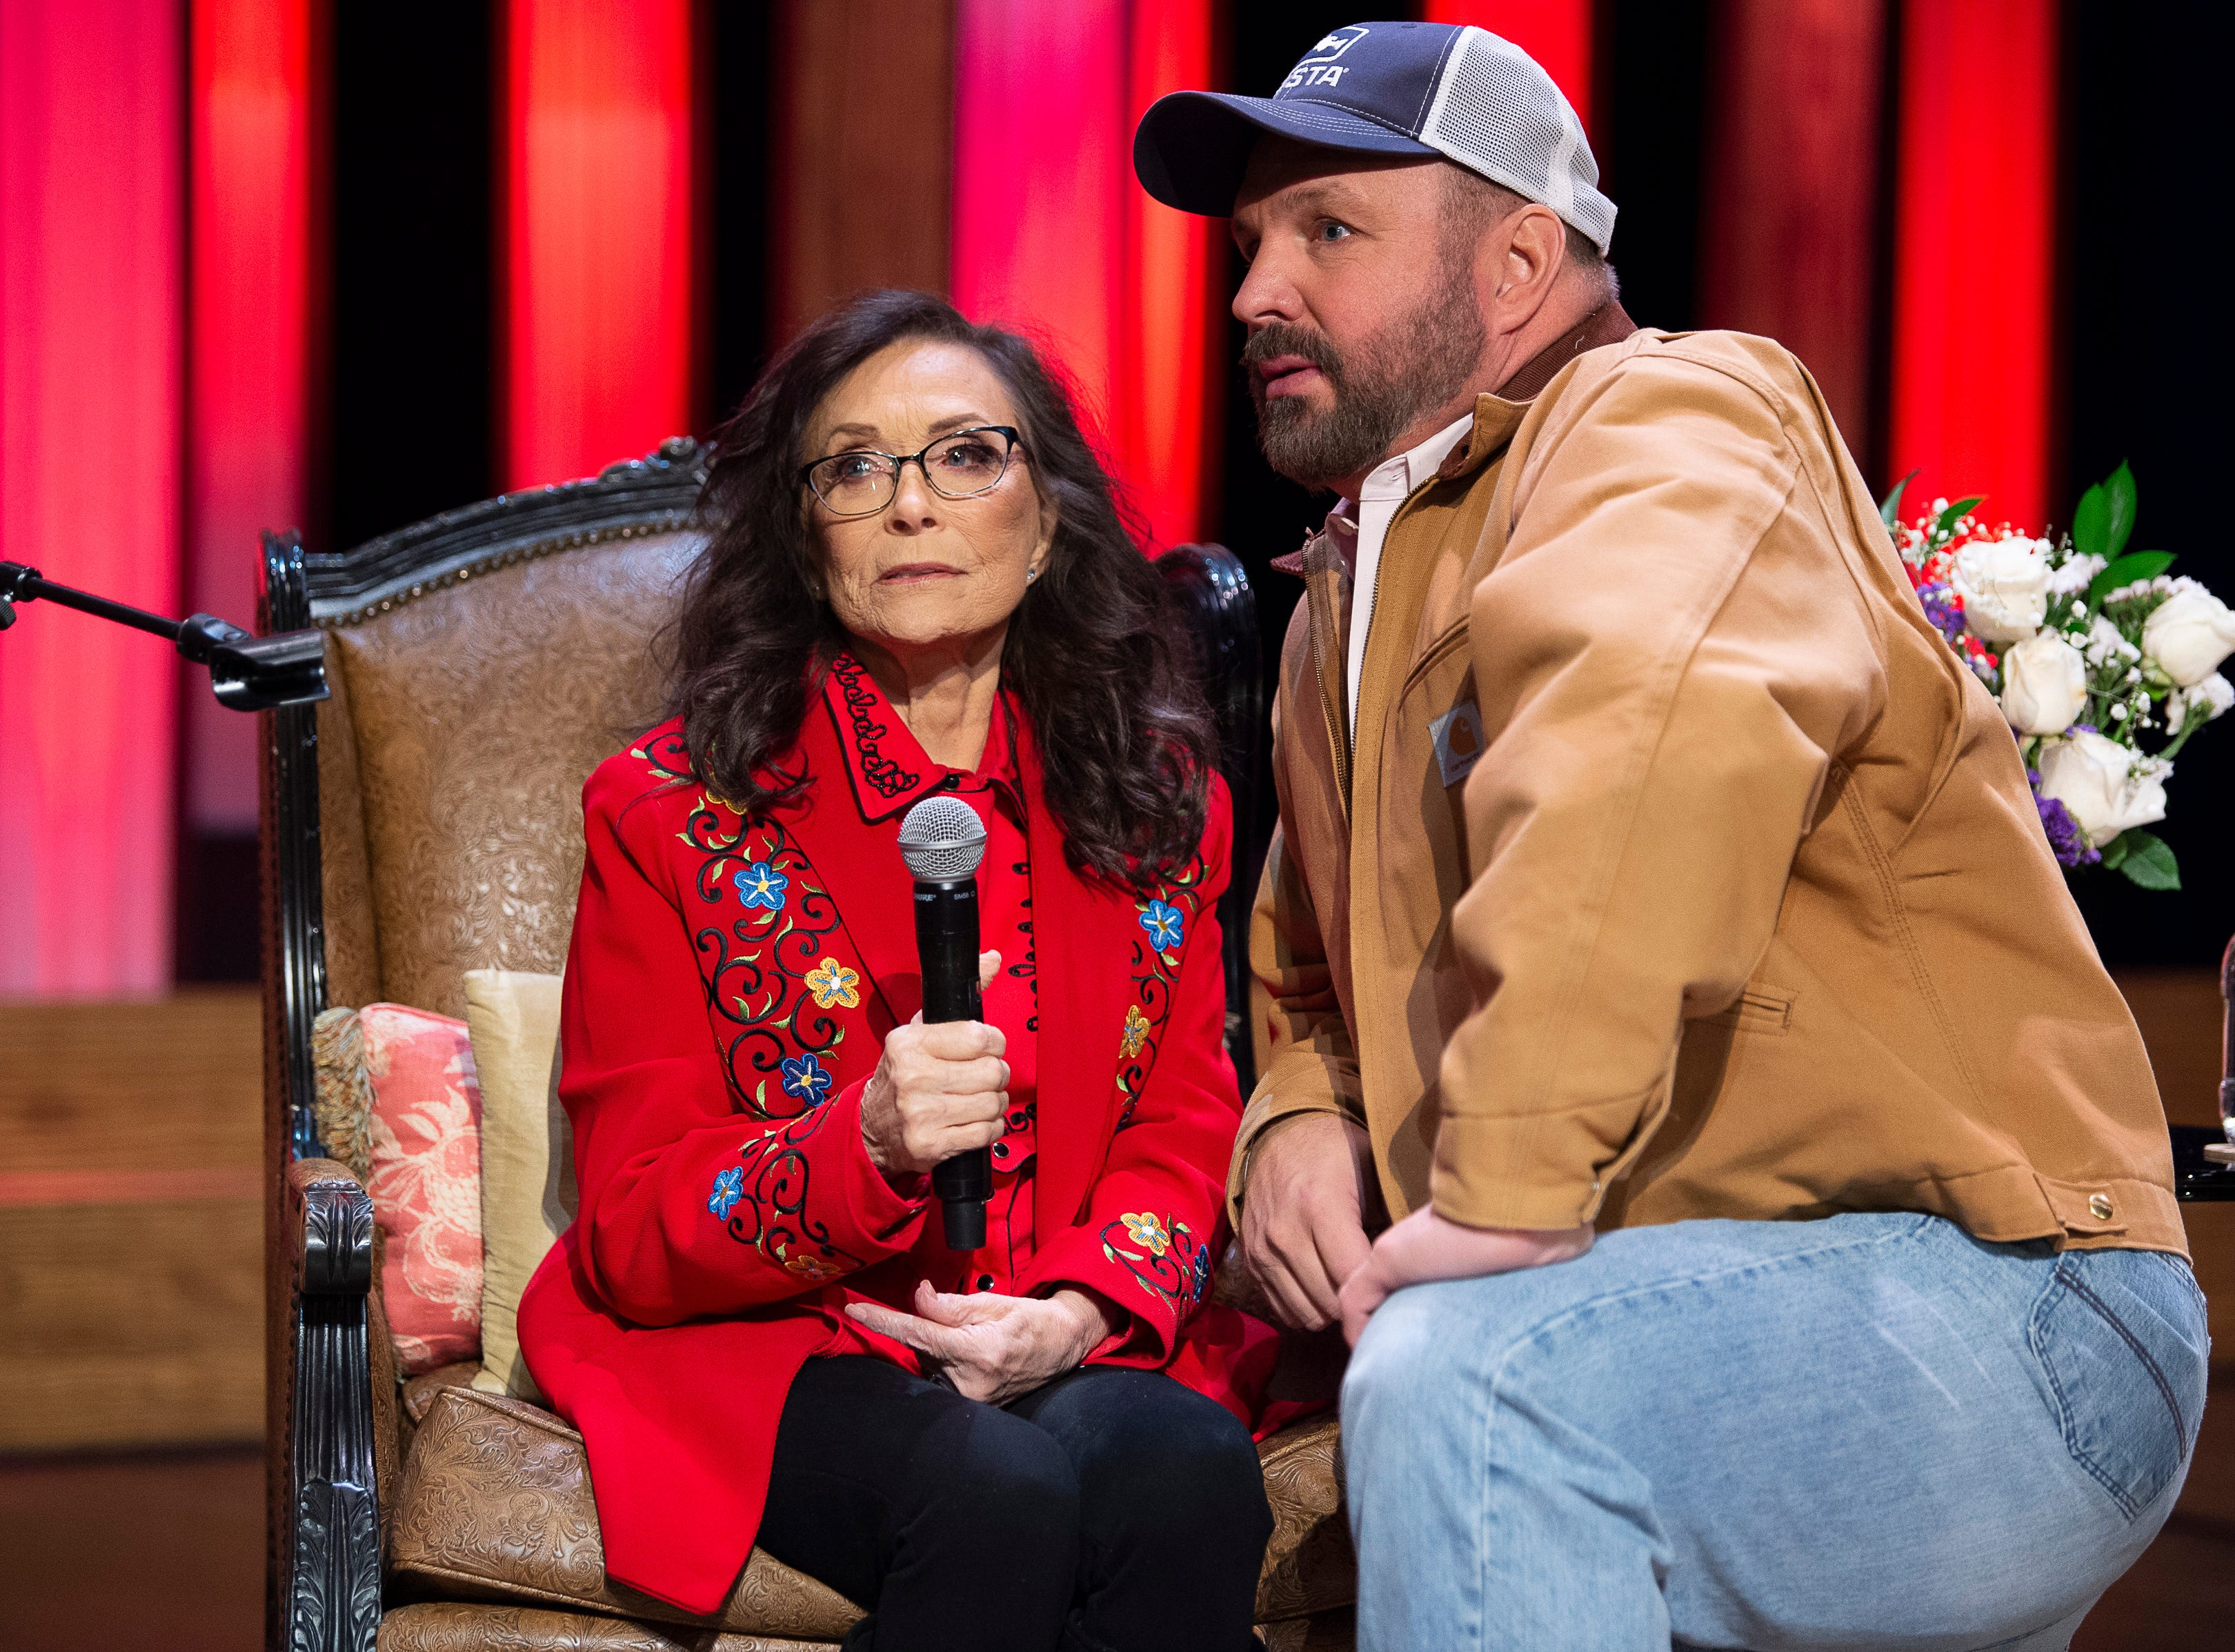 """Loretta Lynn and Garth Brooks announce during a press conference at the Grand Ole Opry on  Jan. 14, 2019, that she will celebrate her 87th birthday in April with a concert performed by her friends. The concert will be """"Loretta Lynn: An All-Star Birthday Celebration Concert"""" on April 1 at Bridgestone Arena."""